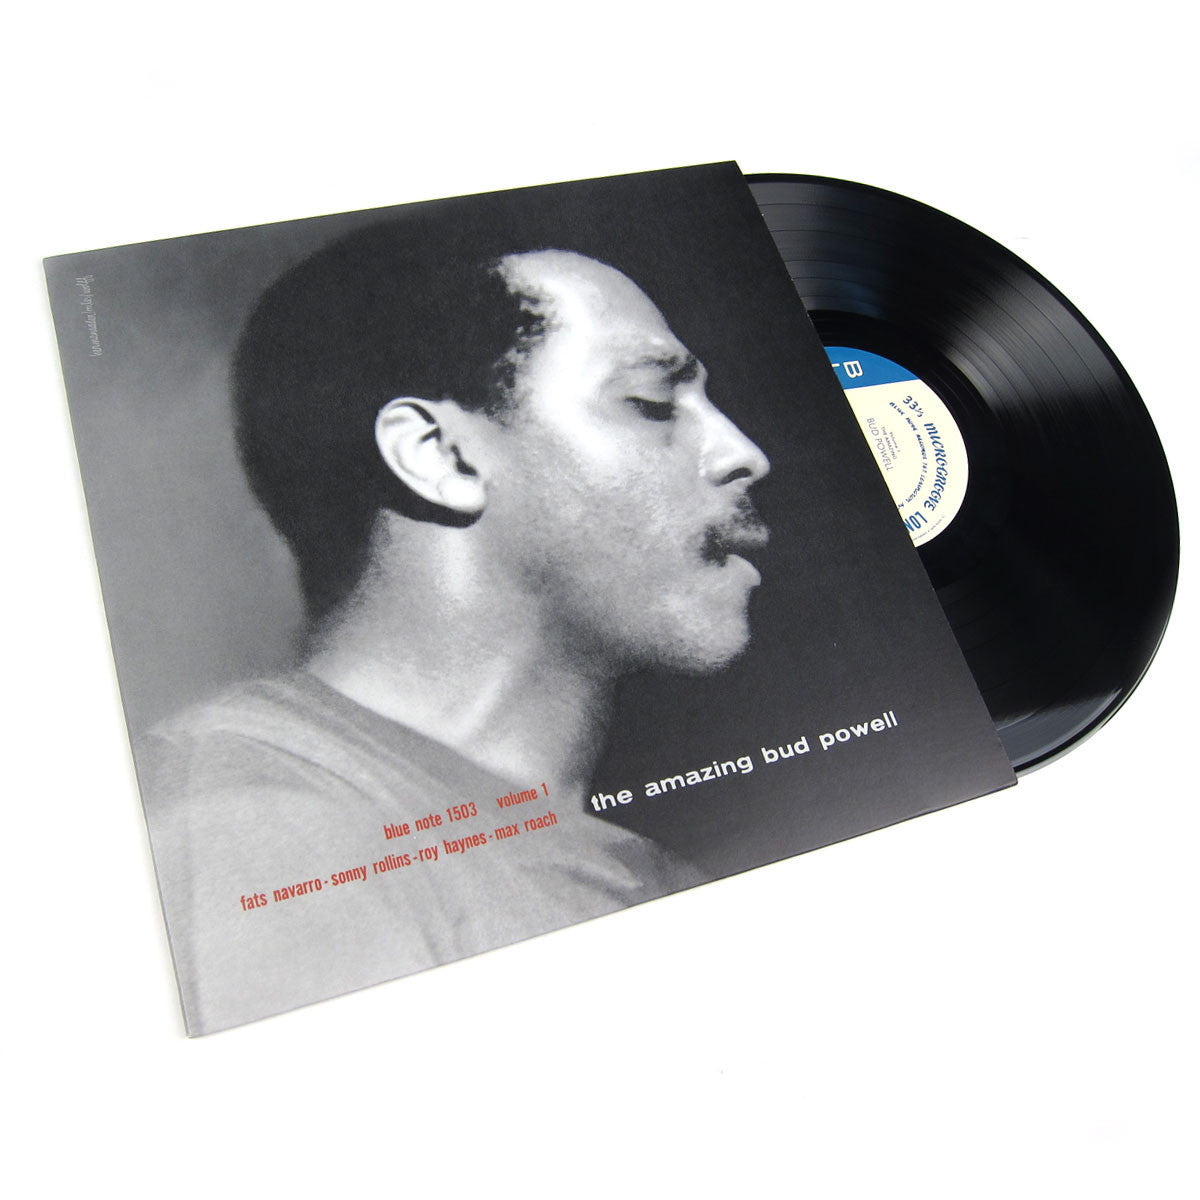 Bud Powell: The Amazing Bud Powell Volume 1 Vinyl LP